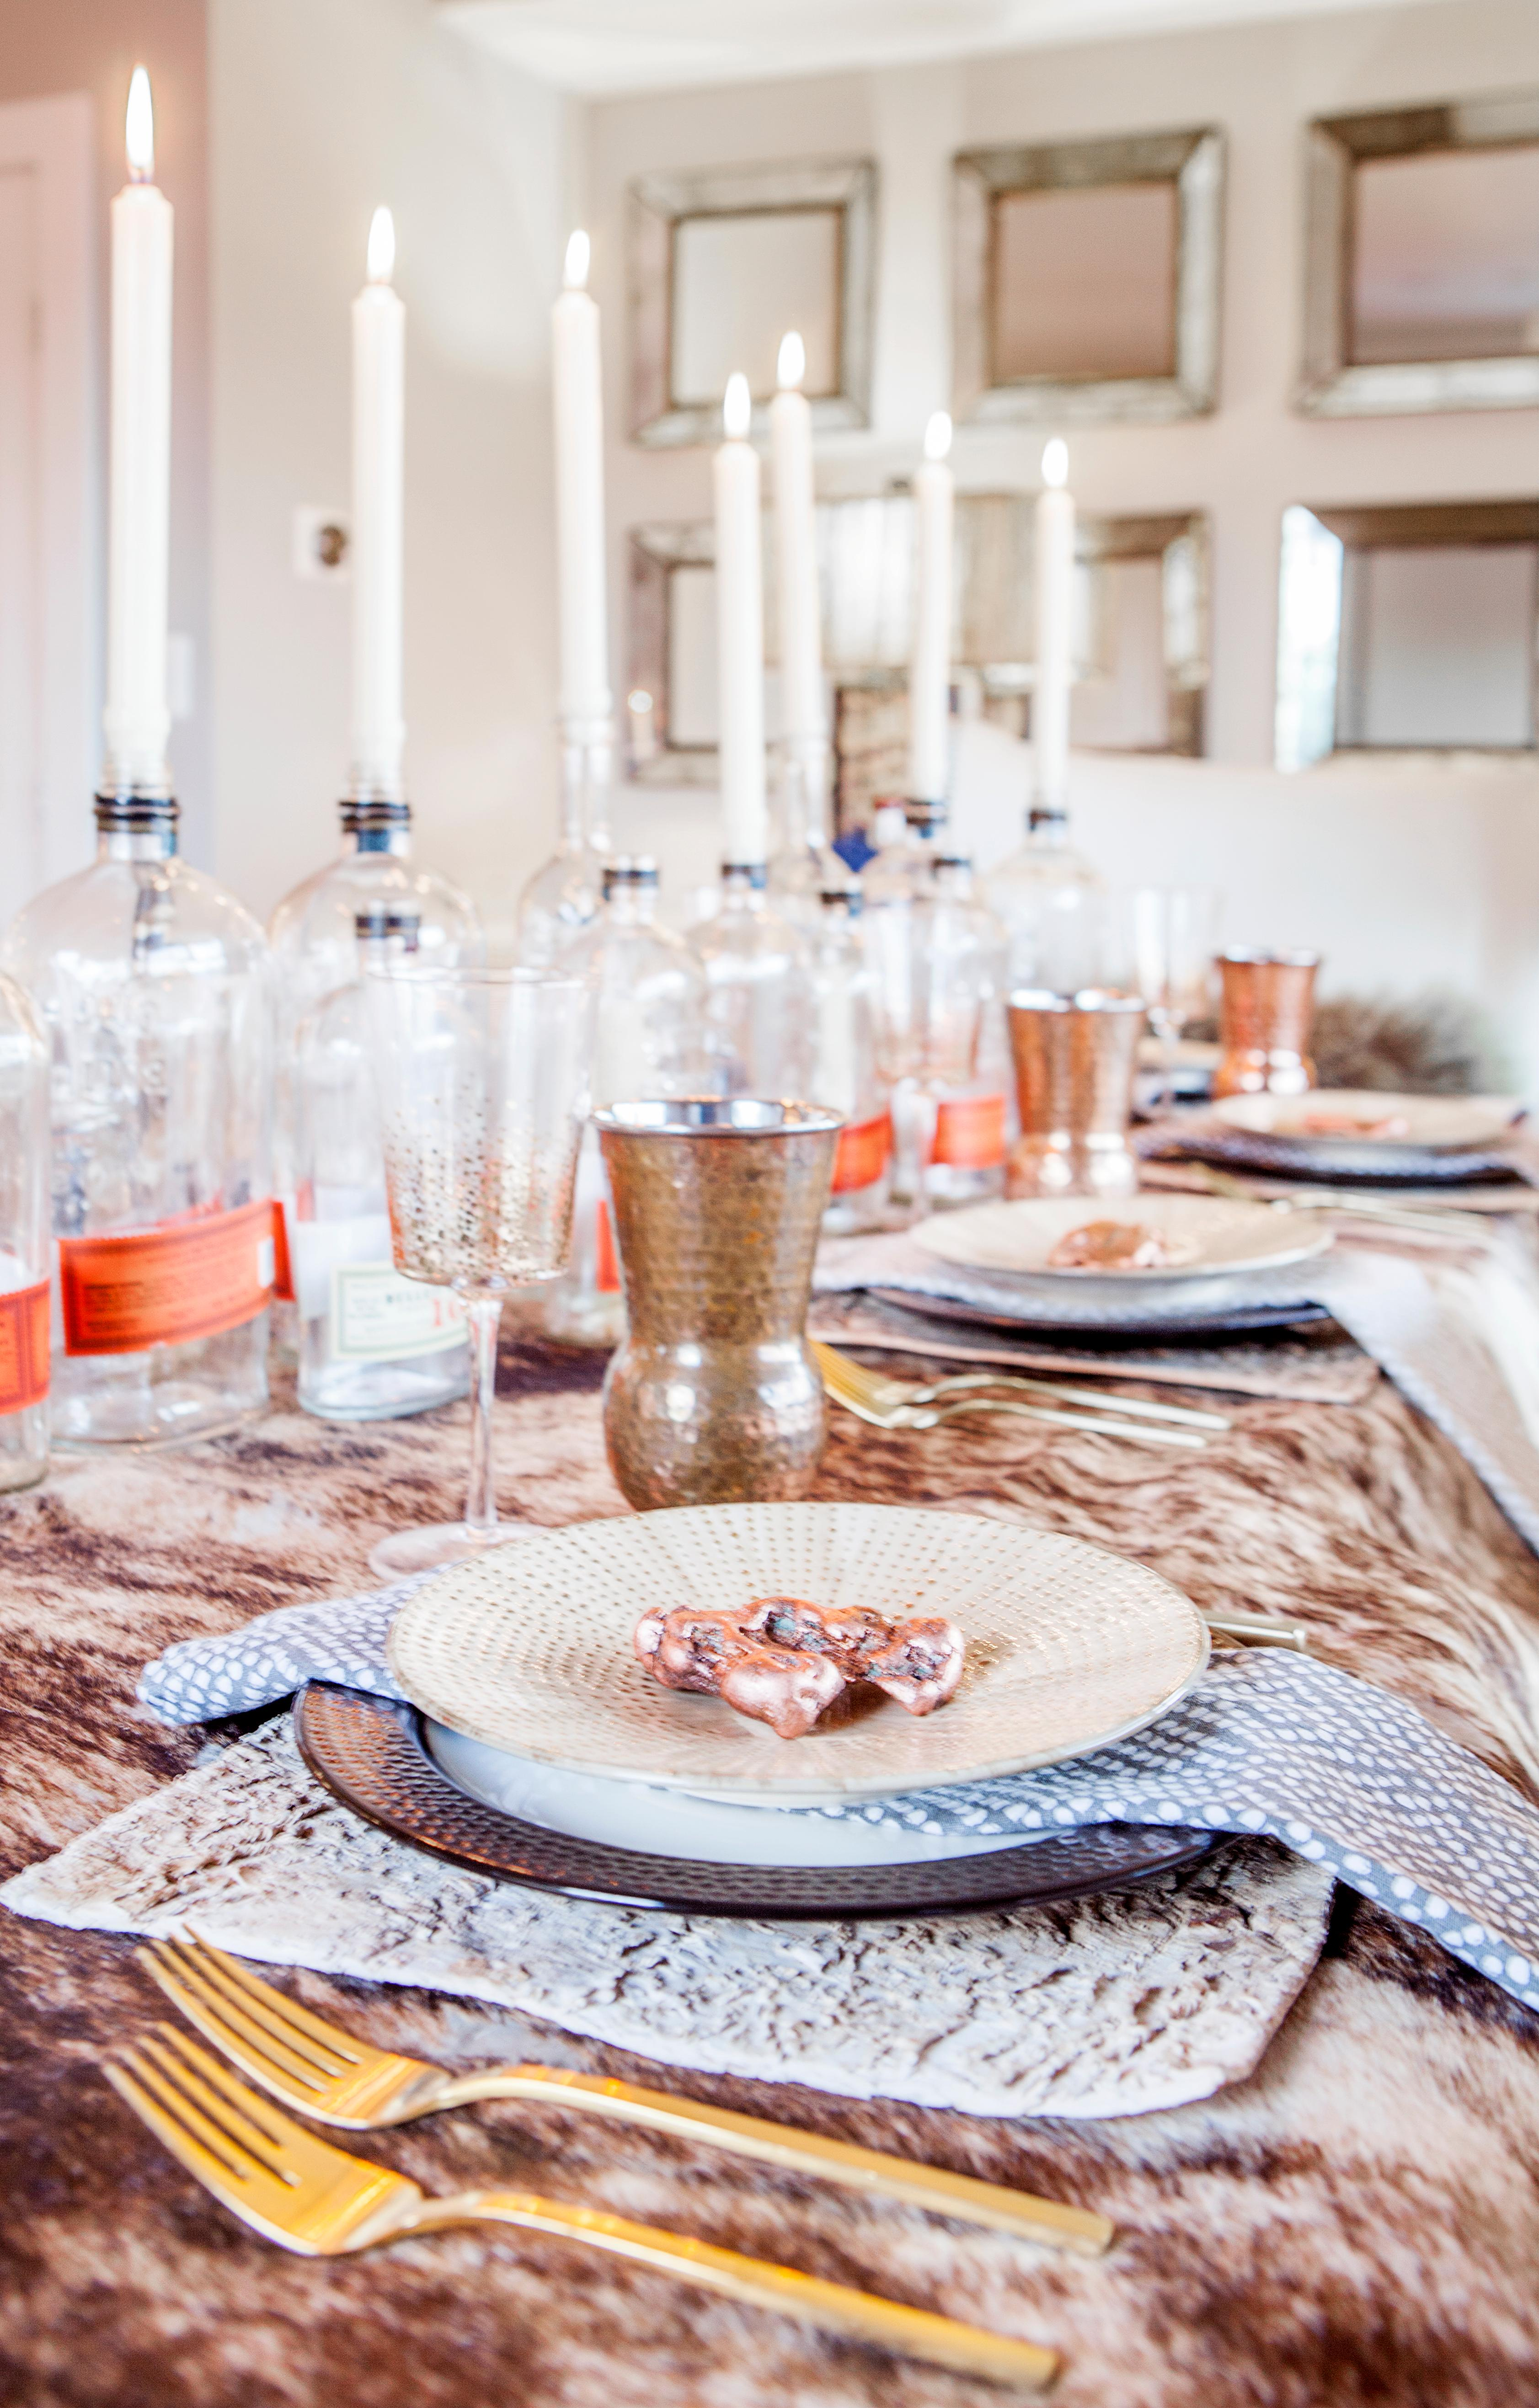 I kept the color palette simple to keep the table feeling manly, and really let the orange labels of the bottles pop. The way to make this table interesting is through layering different textures together. This table would be great for a whiskey tasting party, your man's birthday, or even Fathers Day. (Image: Ashley Hafstead)